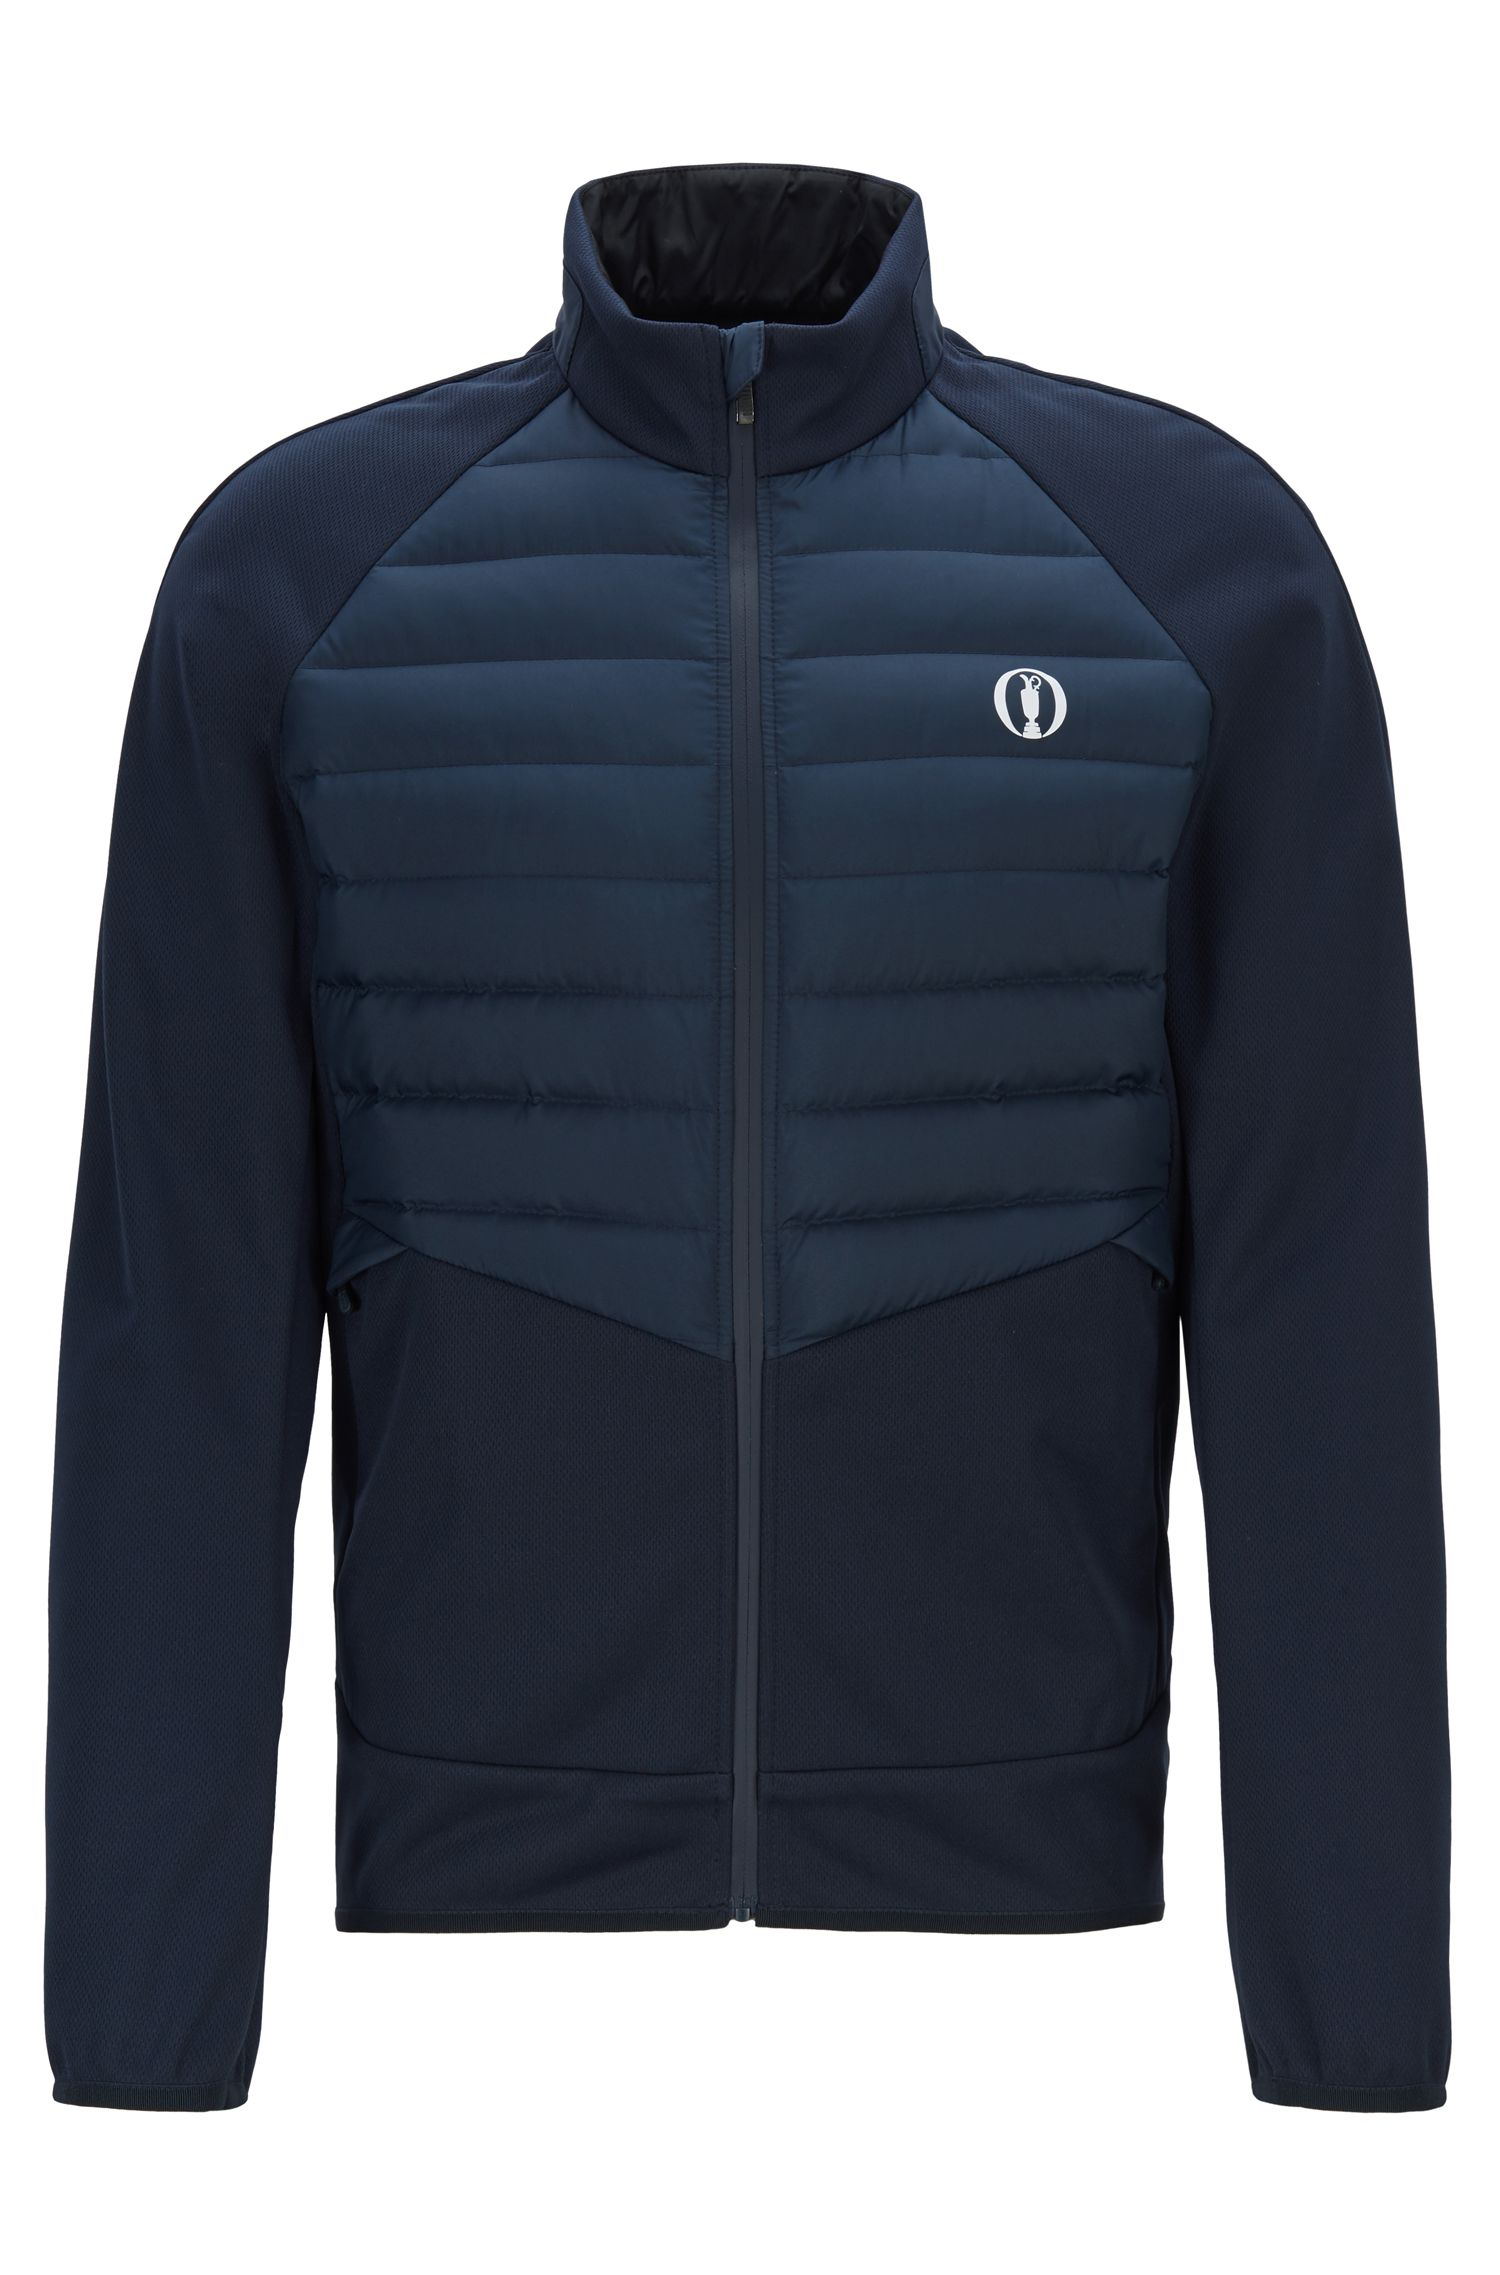 Veste The Open exclusive Slim Fit, avec parties déperlantes, Bleu foncé